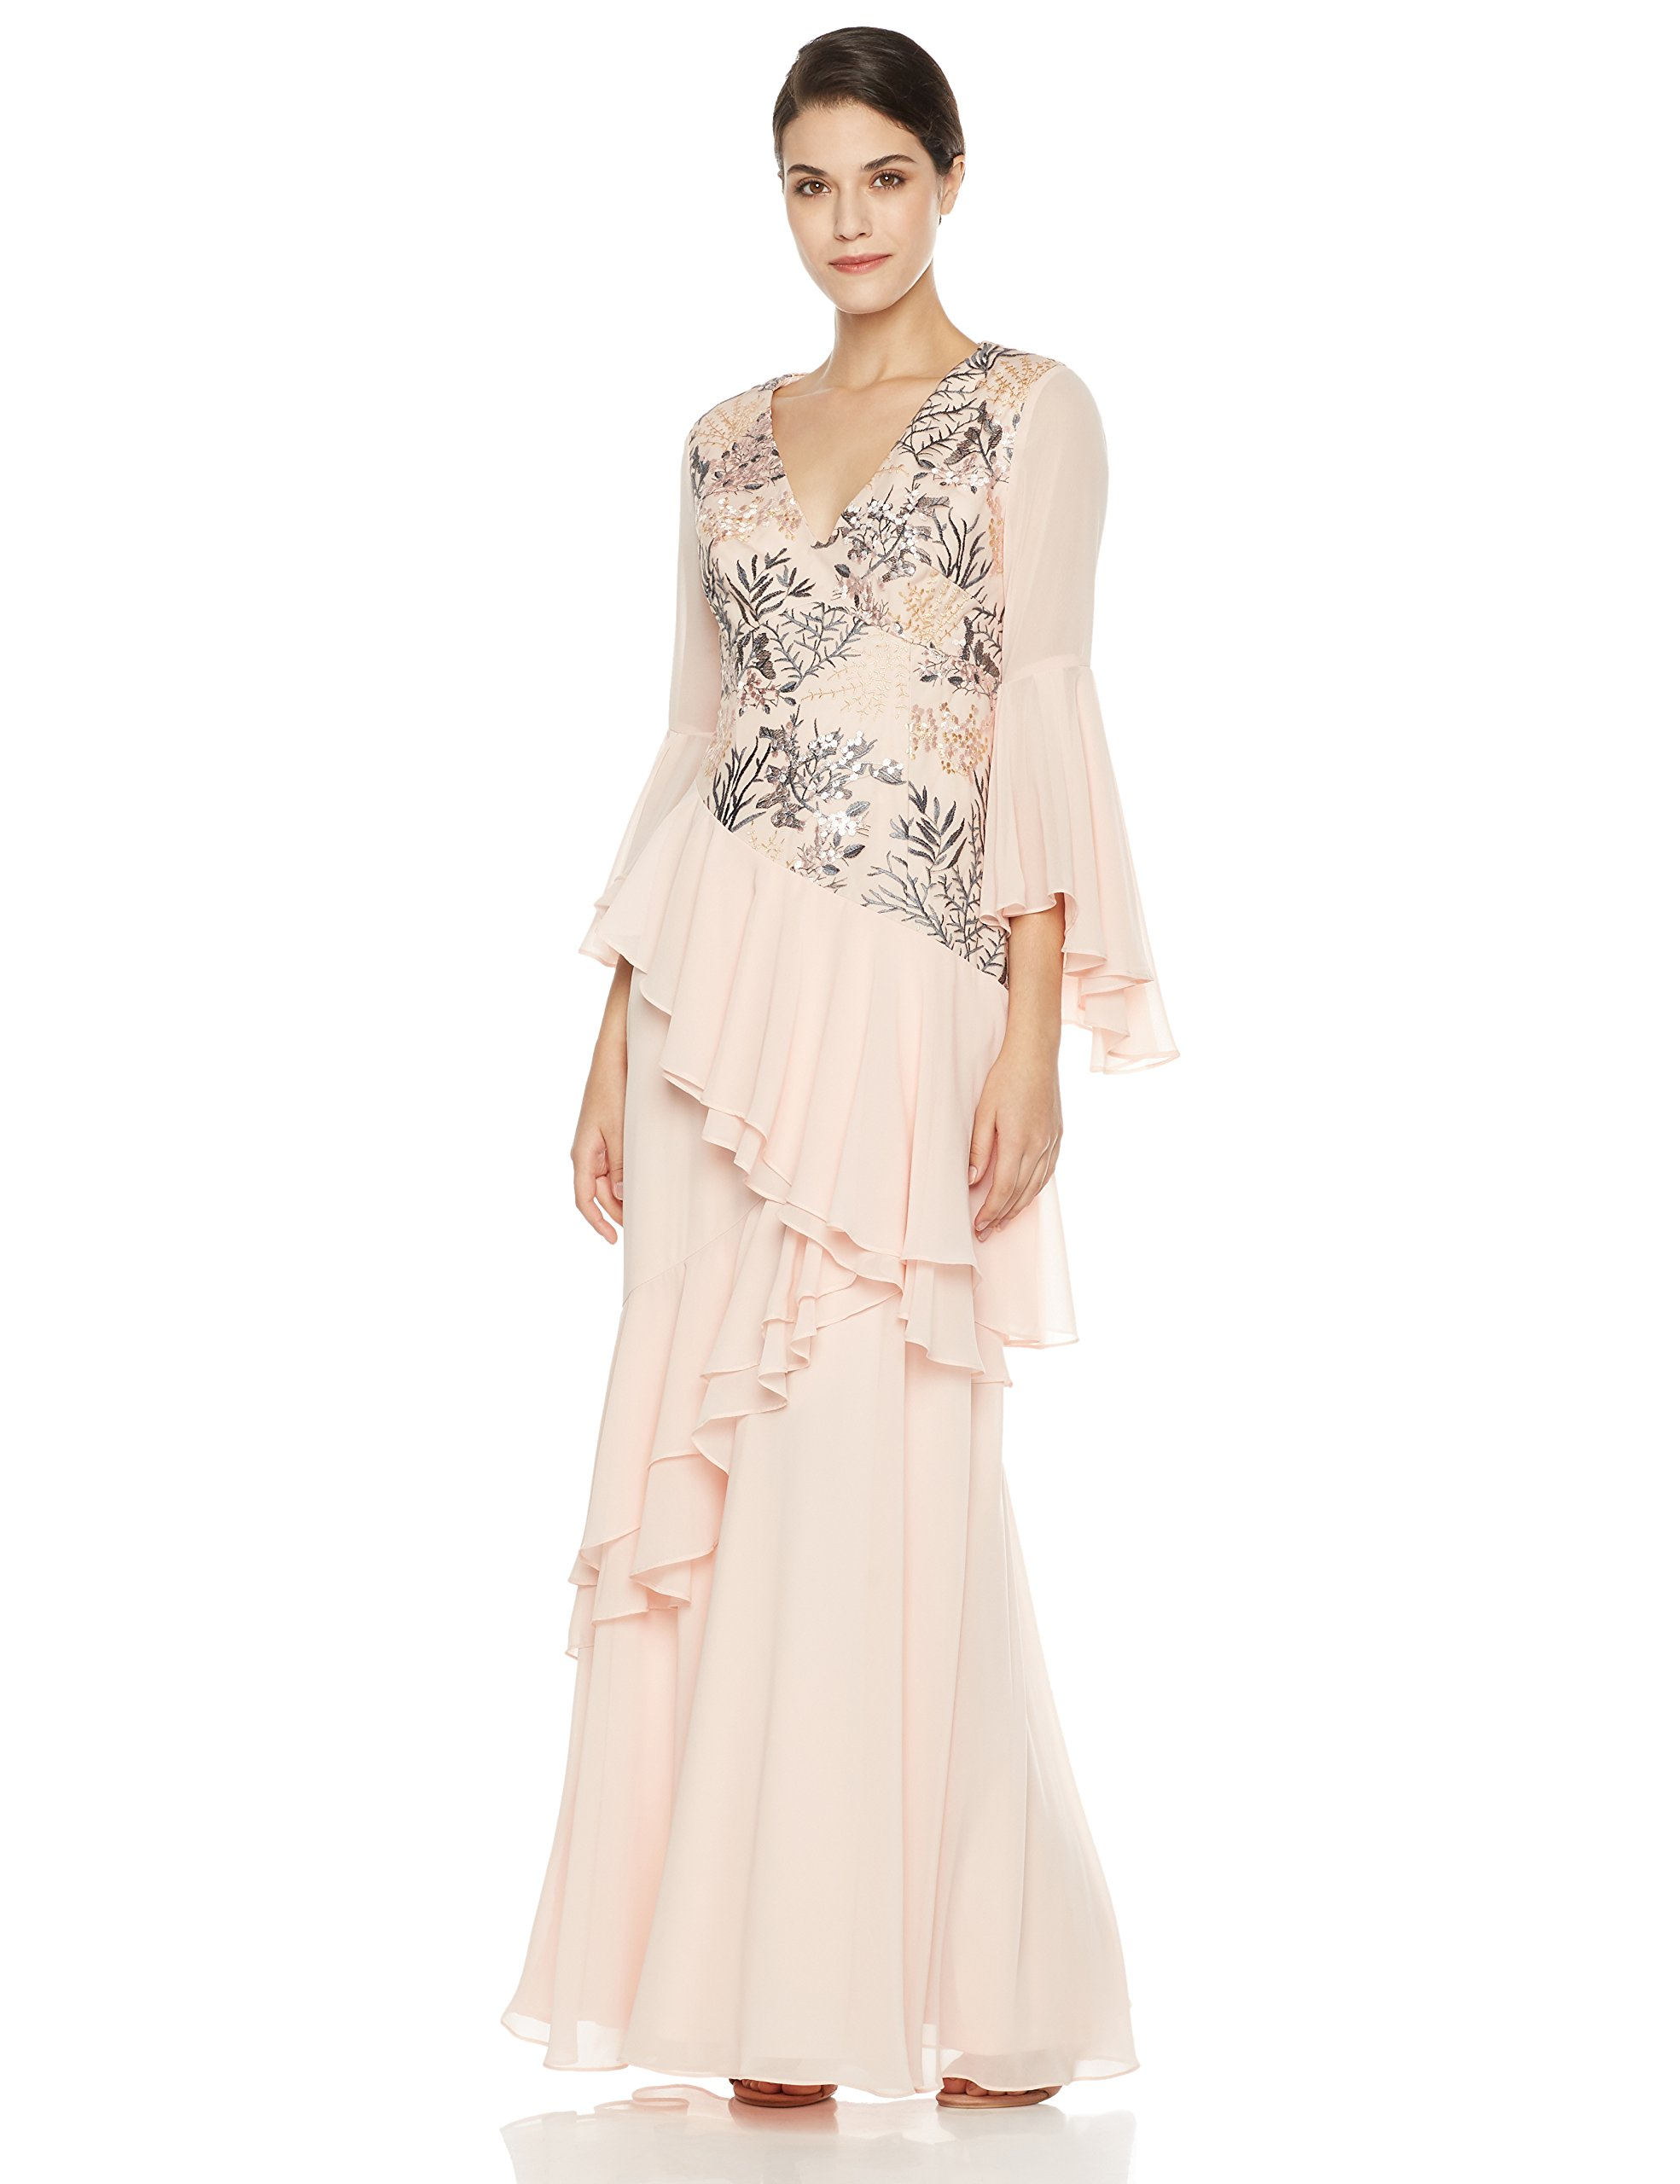 Social Graces Women's V-Neck Long Bell Sleeve Floral Embroidery Ruffle Drape Evening Gown 4 Ballet Pink by Social Graces